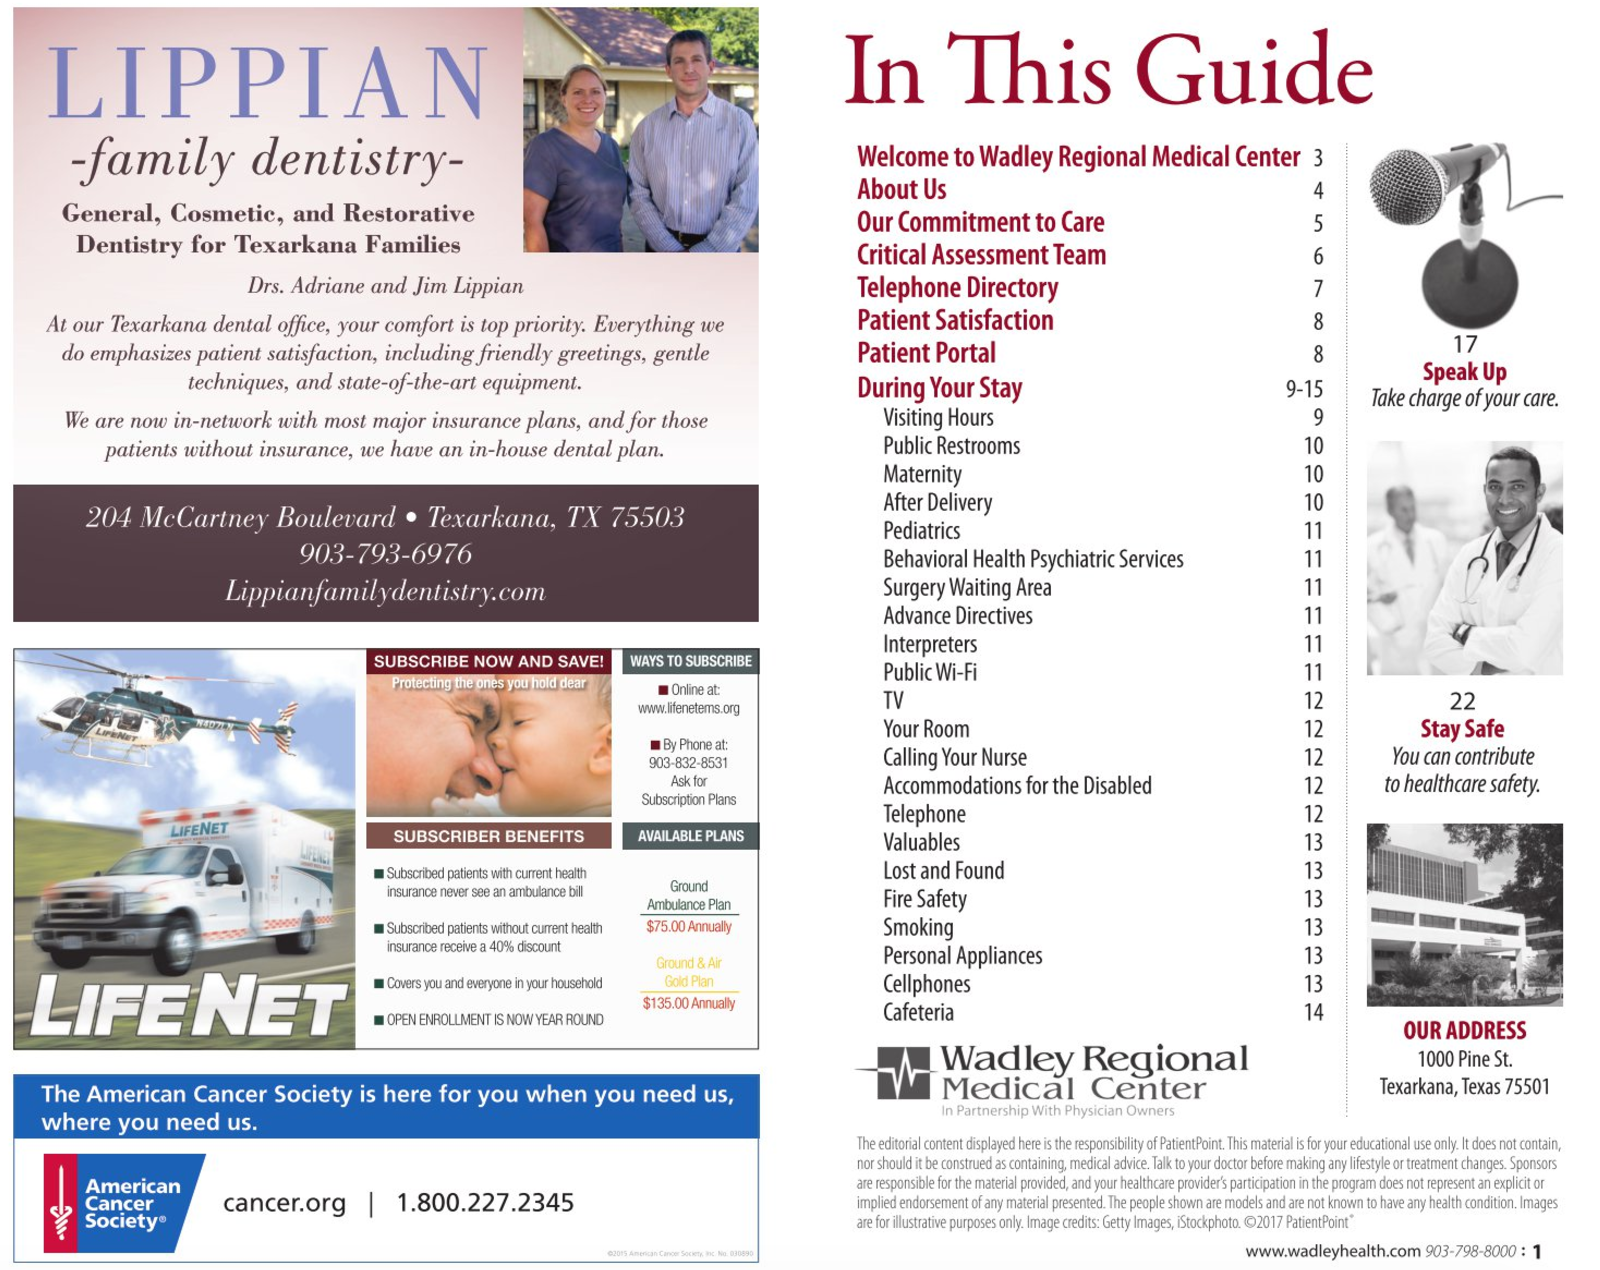 Wadley Patient Guide Cover